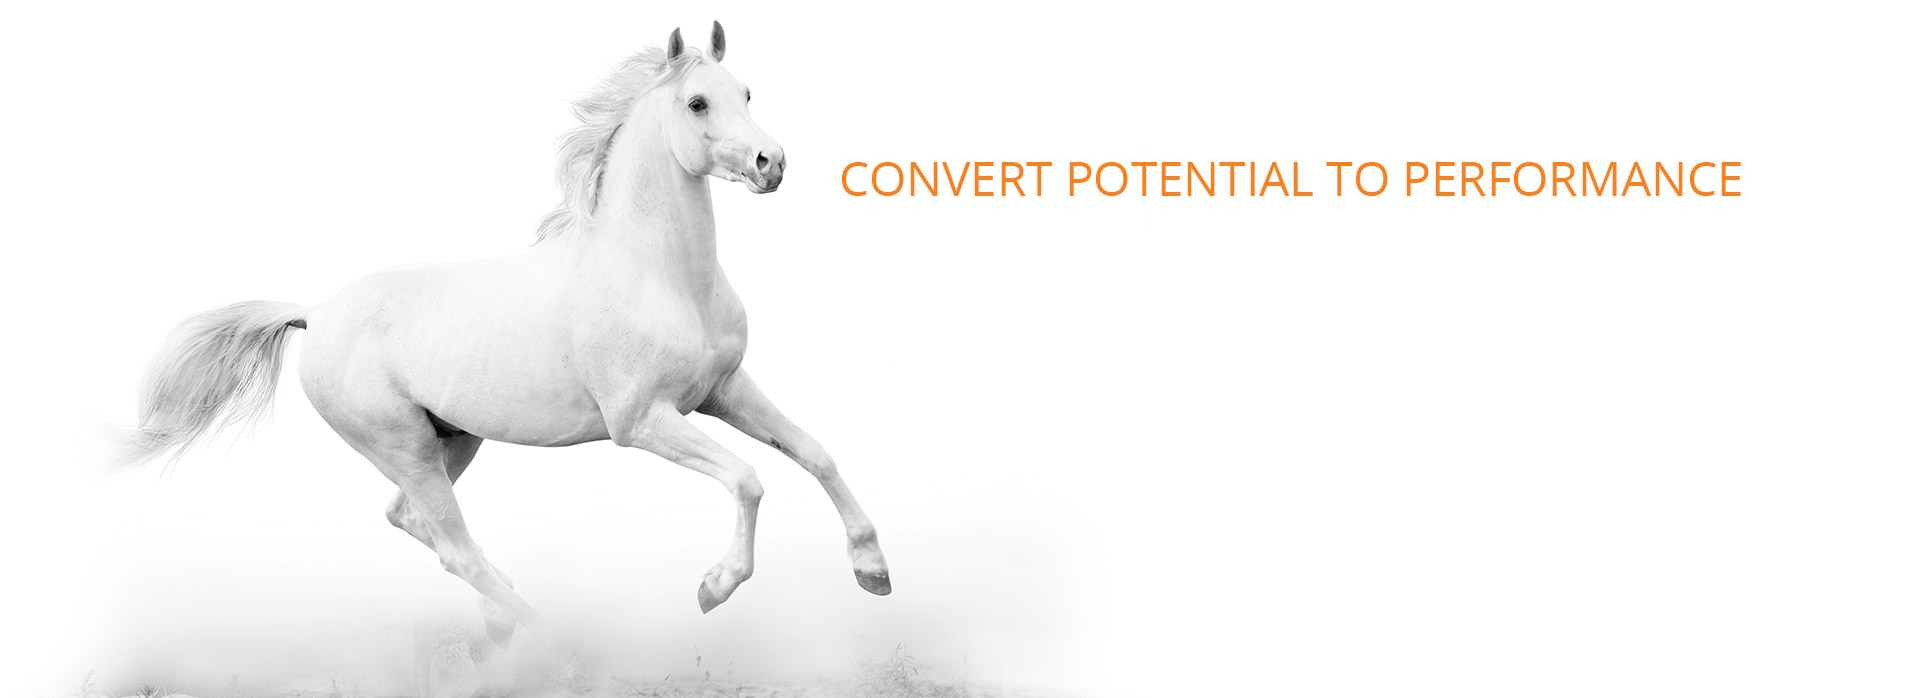 CONVERT POTENTIAL TO PERFORMANCE